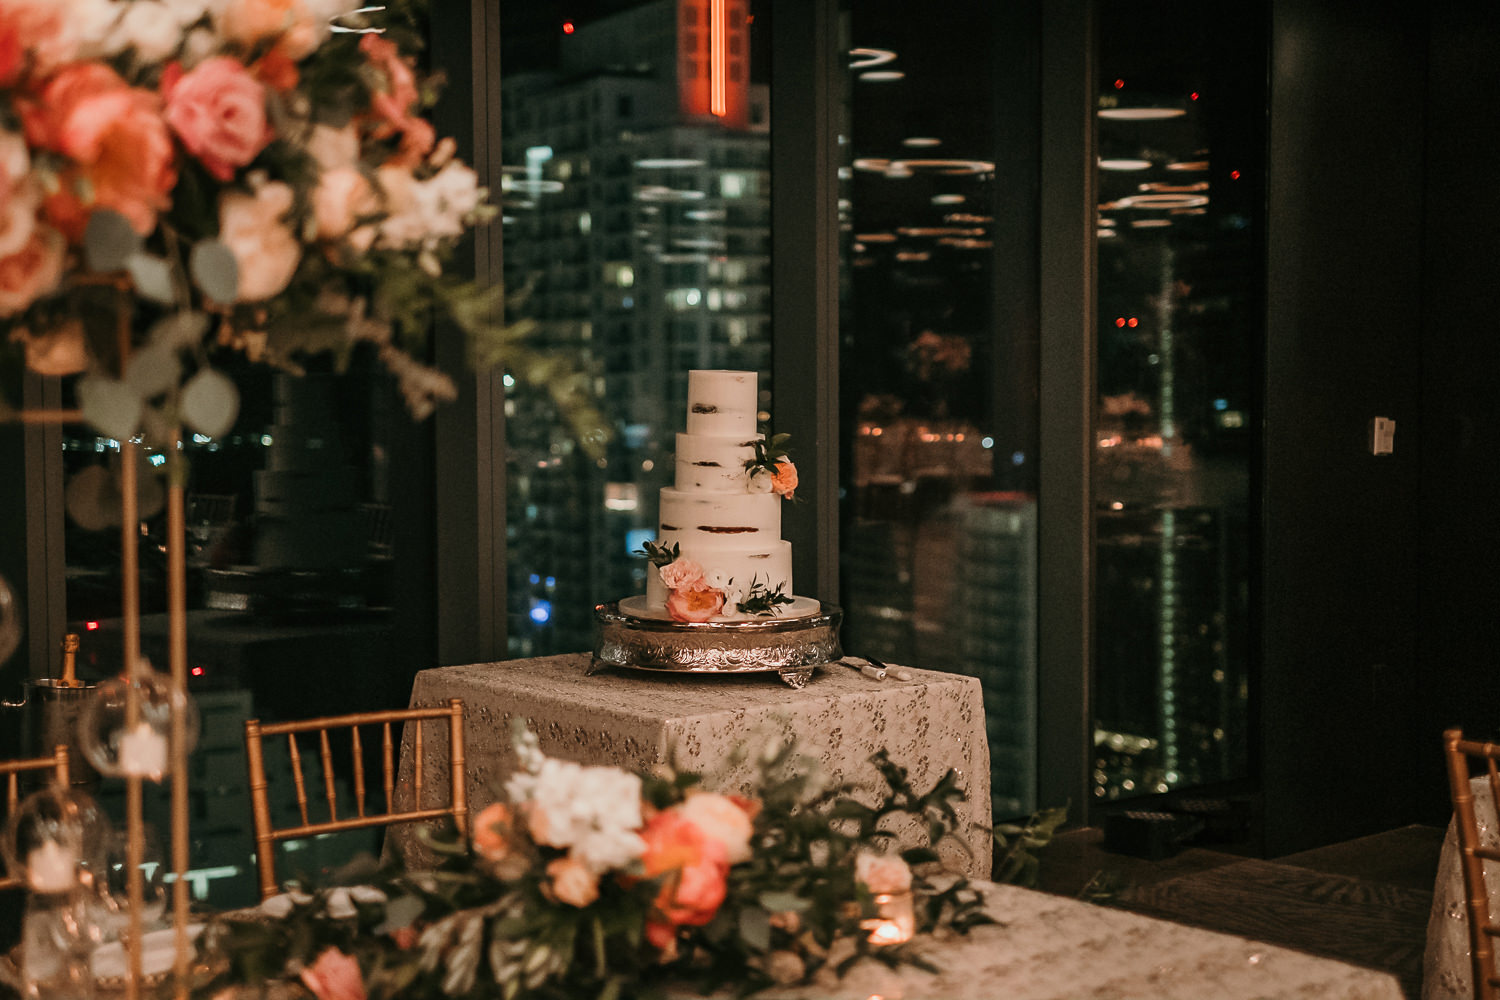 far away shot of cake with nighttime view in background